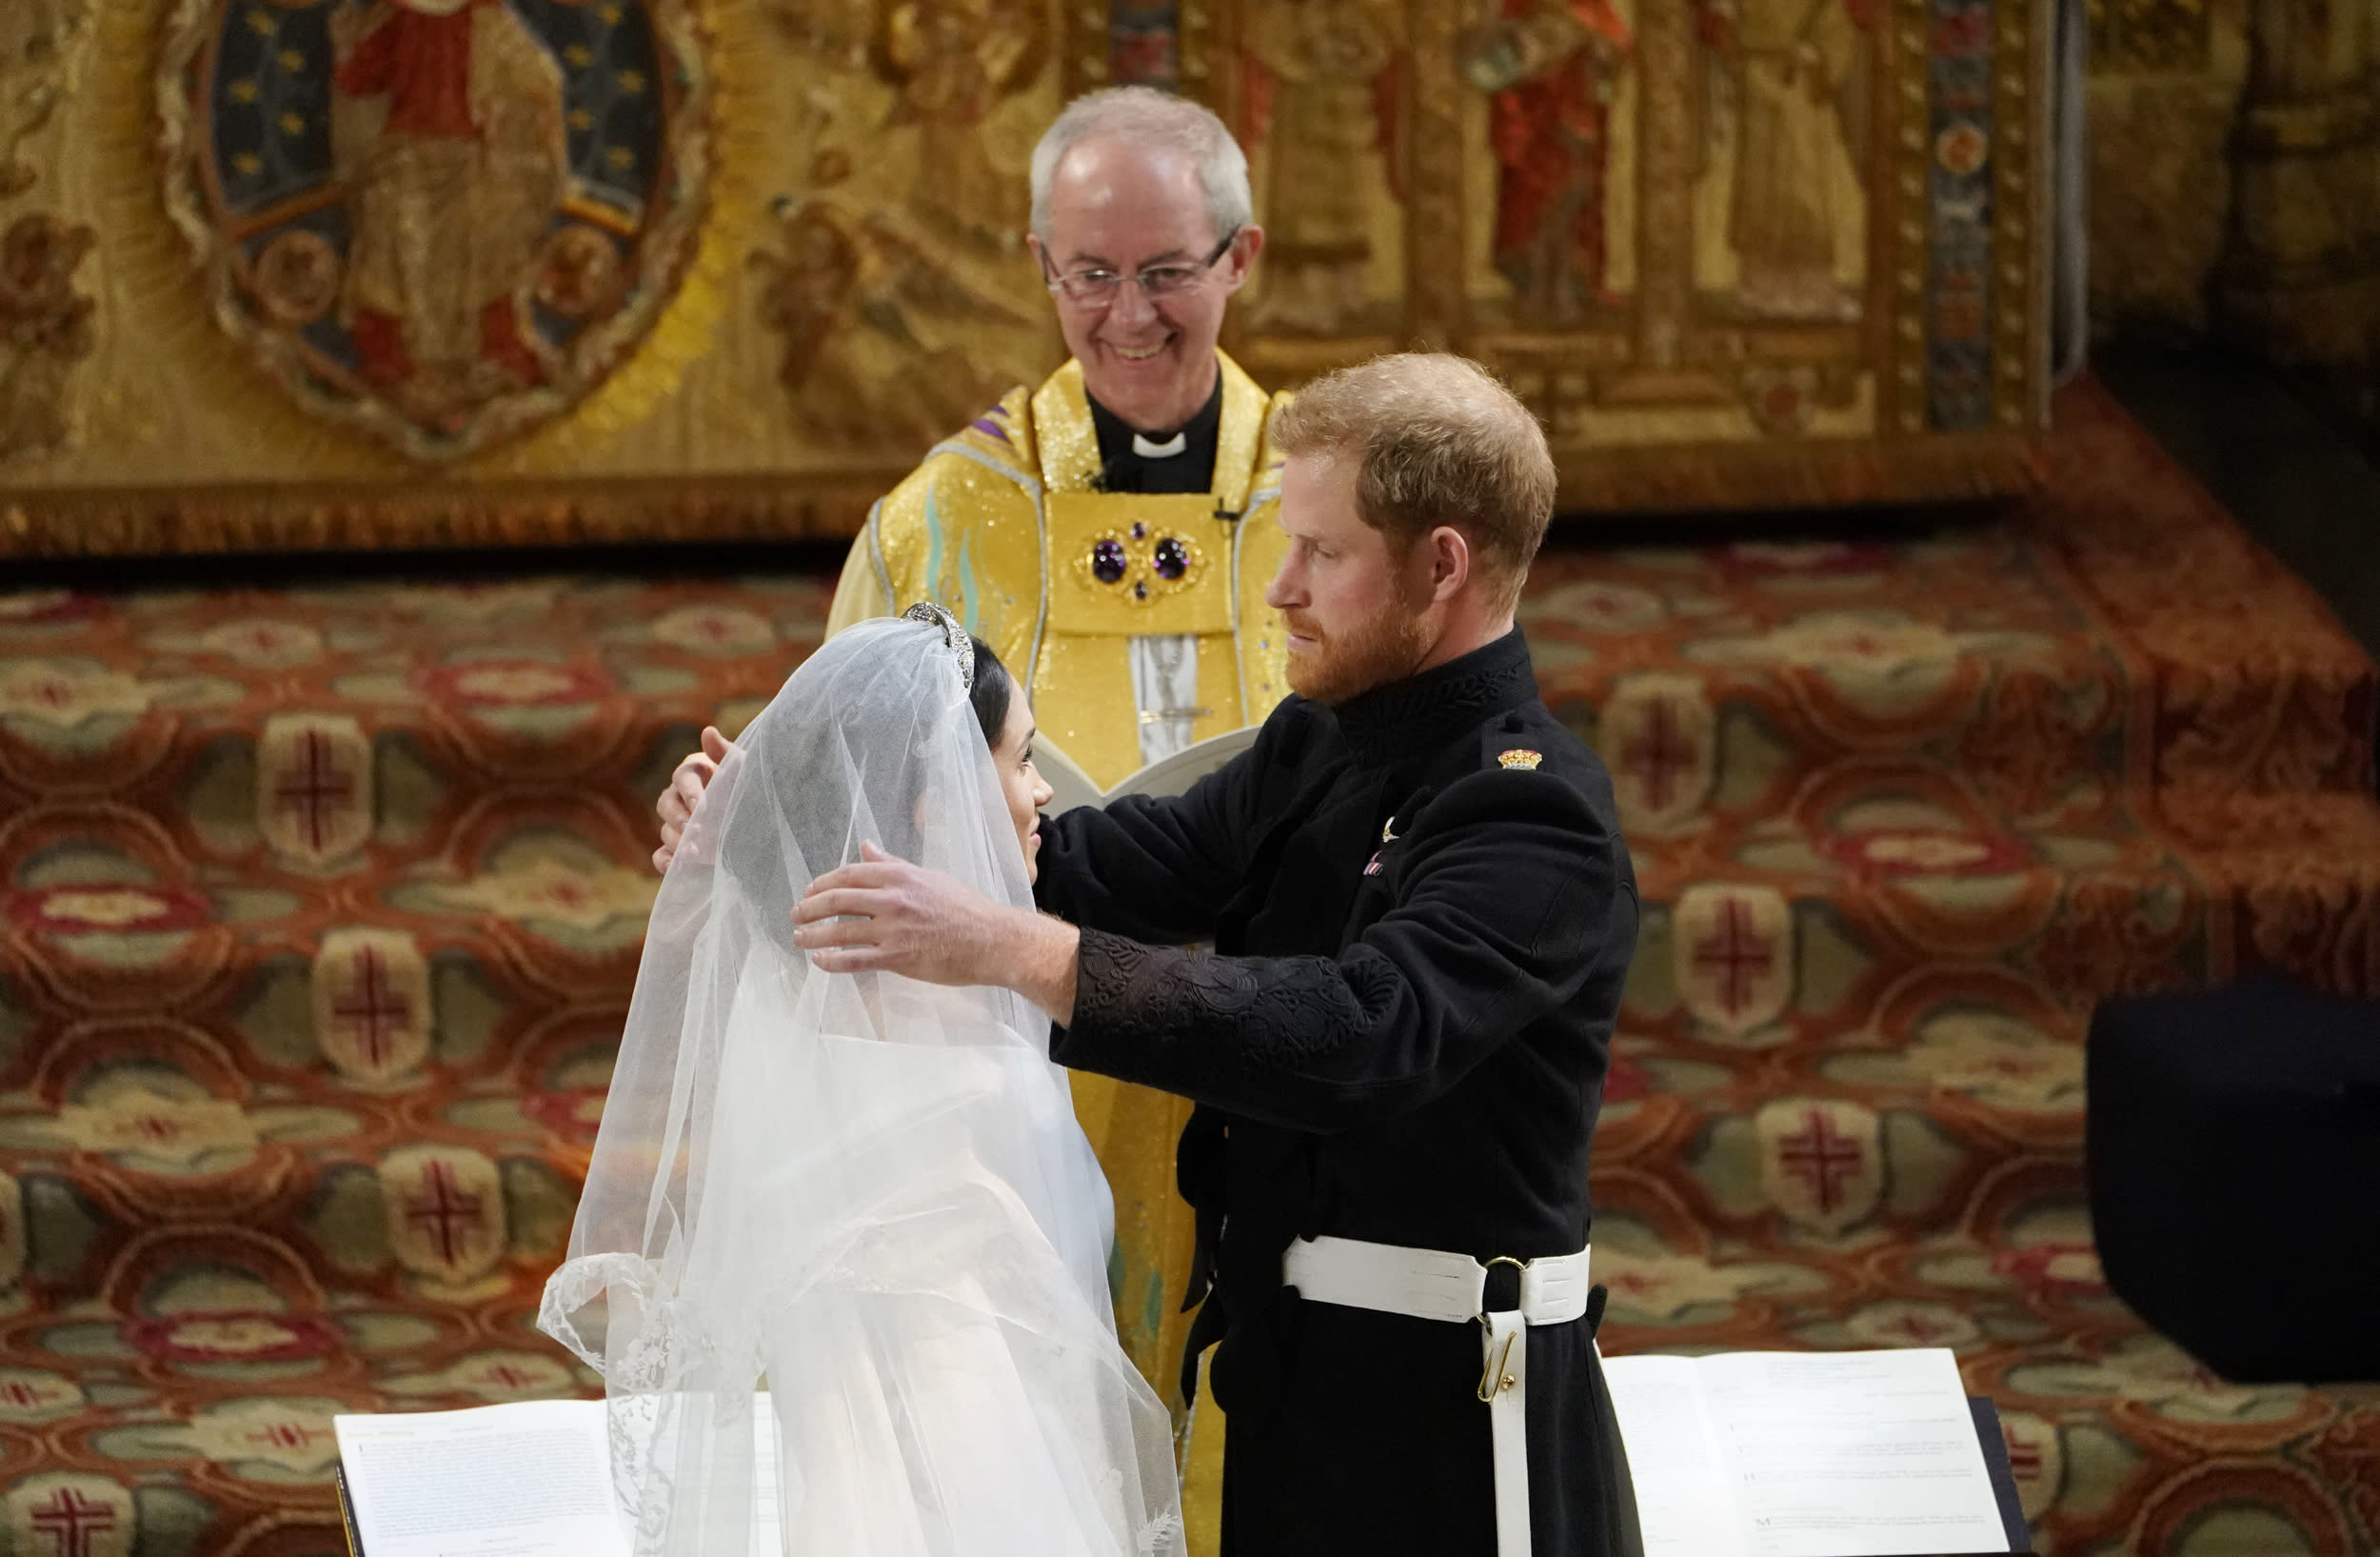 TOPSHOT - Britain's Prince Harry, Duke of Sussex (R) removes the veil of US actress Meghan Markle (L) as they stand at the altar together before Archbishop of Canterbury Justin Welby (C) in St George's Chapel, Windsor Castle, in Windsor, on May 19, 2018 during their wedding ceremony. (Photo by Owen Humphreys / POOL / AFP)        (Photo credit should read OWEN HUMPHREYS/AFP/Getty Images)